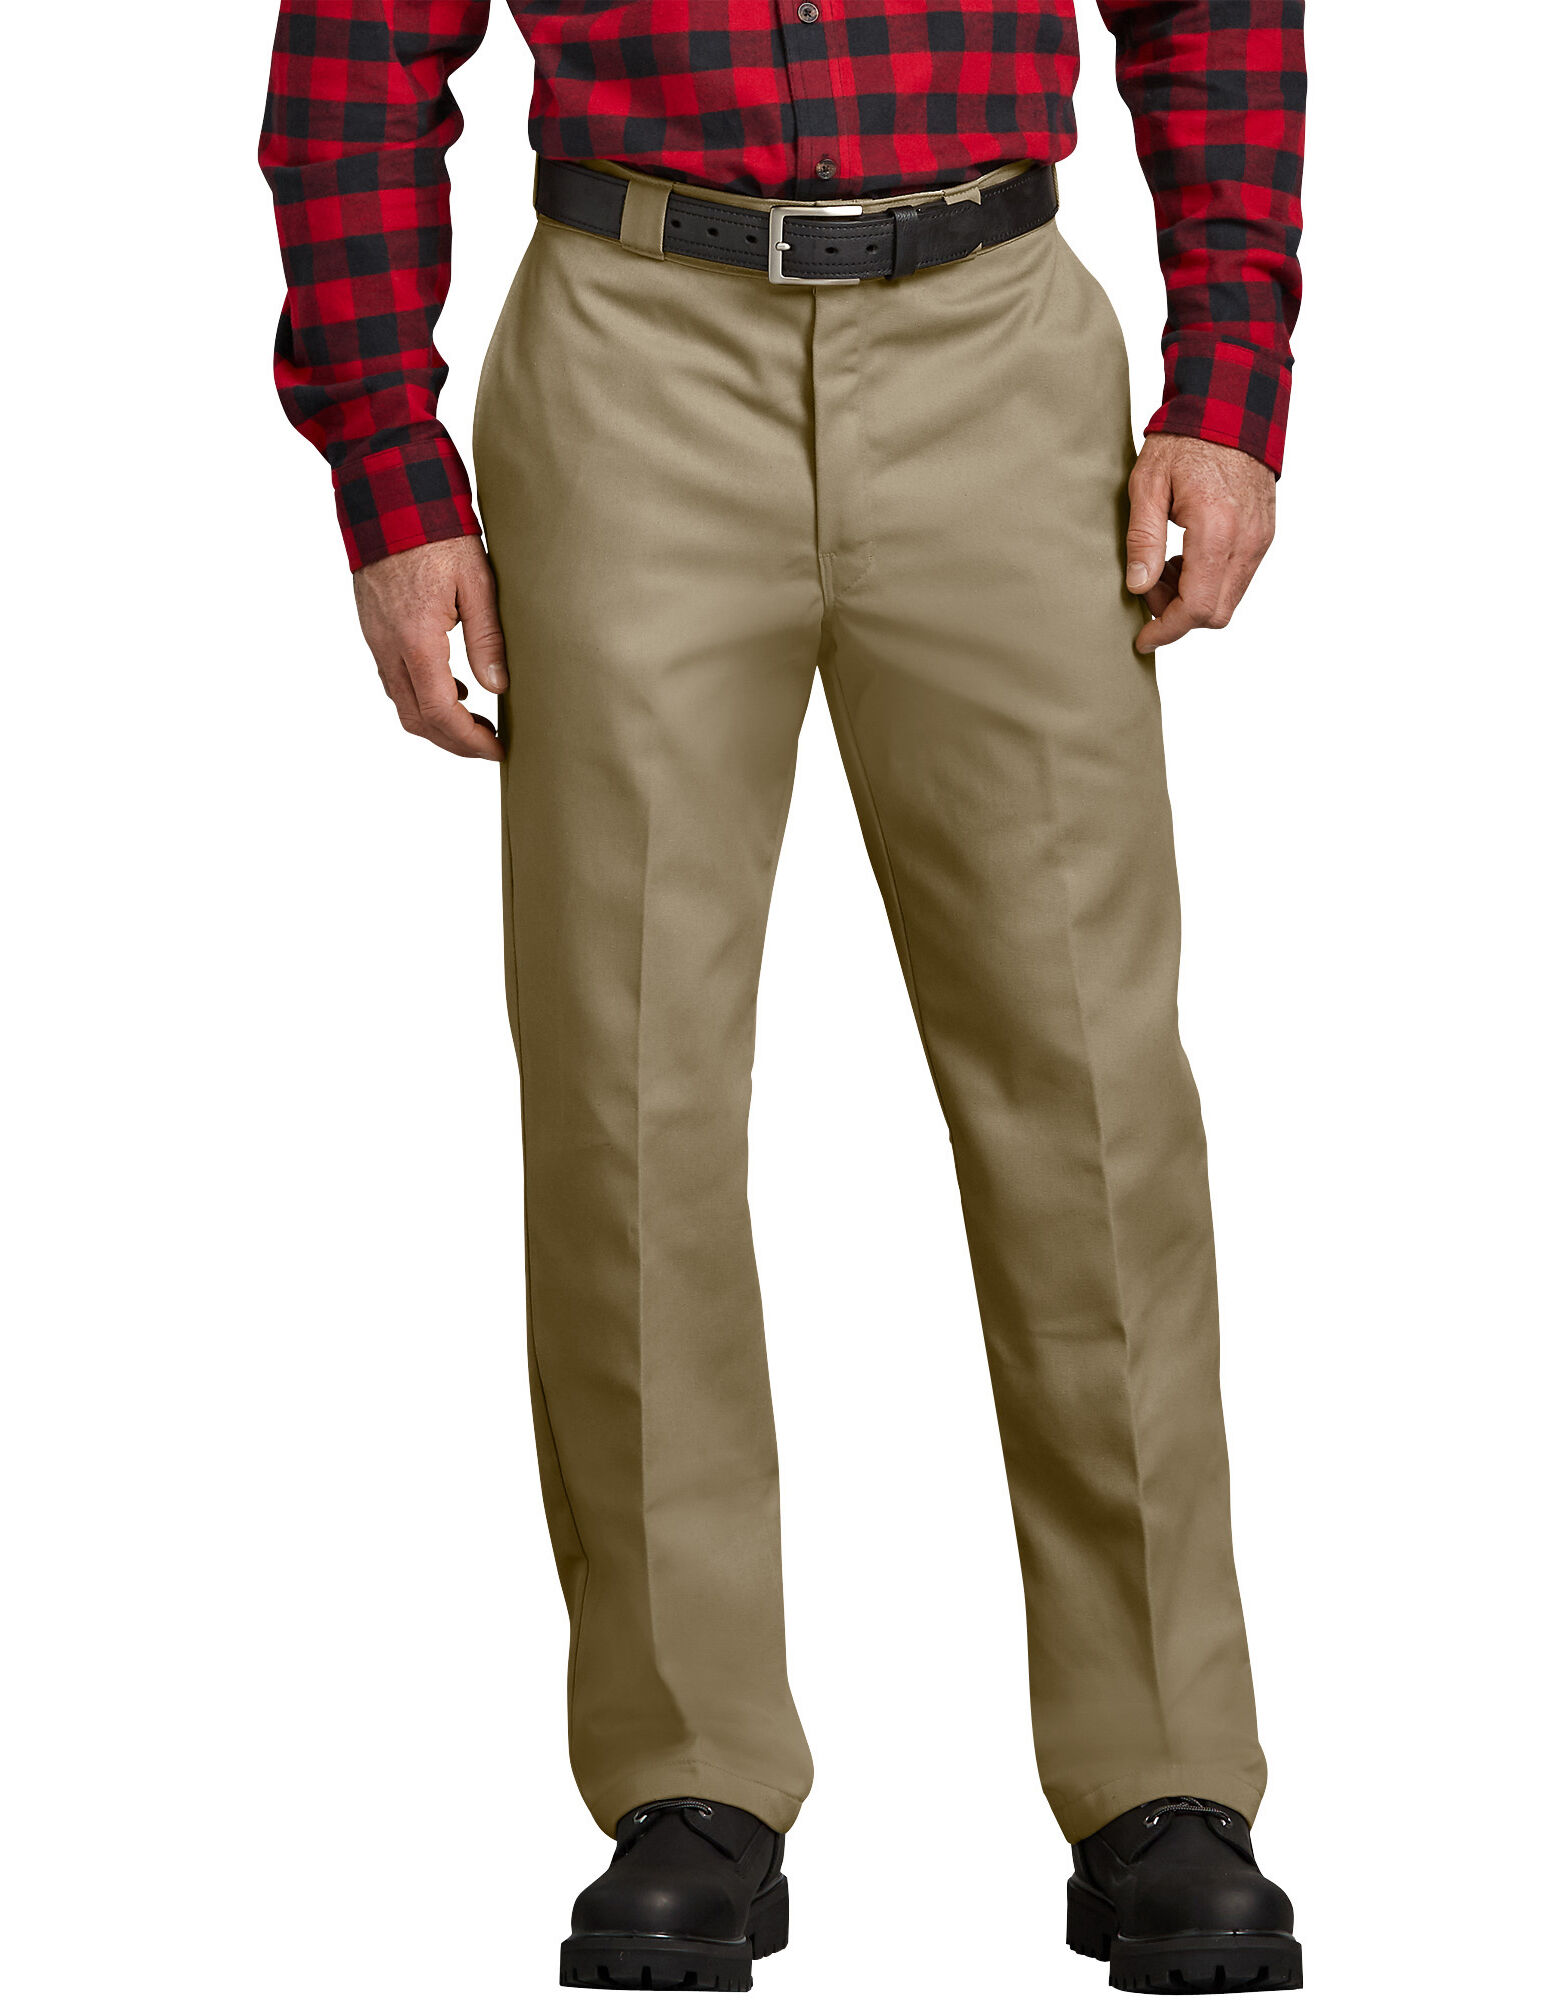 Dickies Men's Relaxed Fit Flannel-Lined Work Pant. by Dickies. $ - $ $ 17 $ 97 17 Prime. FREE Shipping on eligible orders. Some sizes/colors are Prime eligible. out of 5 stars Product Description Twill pant is full lined with flannel to help keep you warm and comfortable.